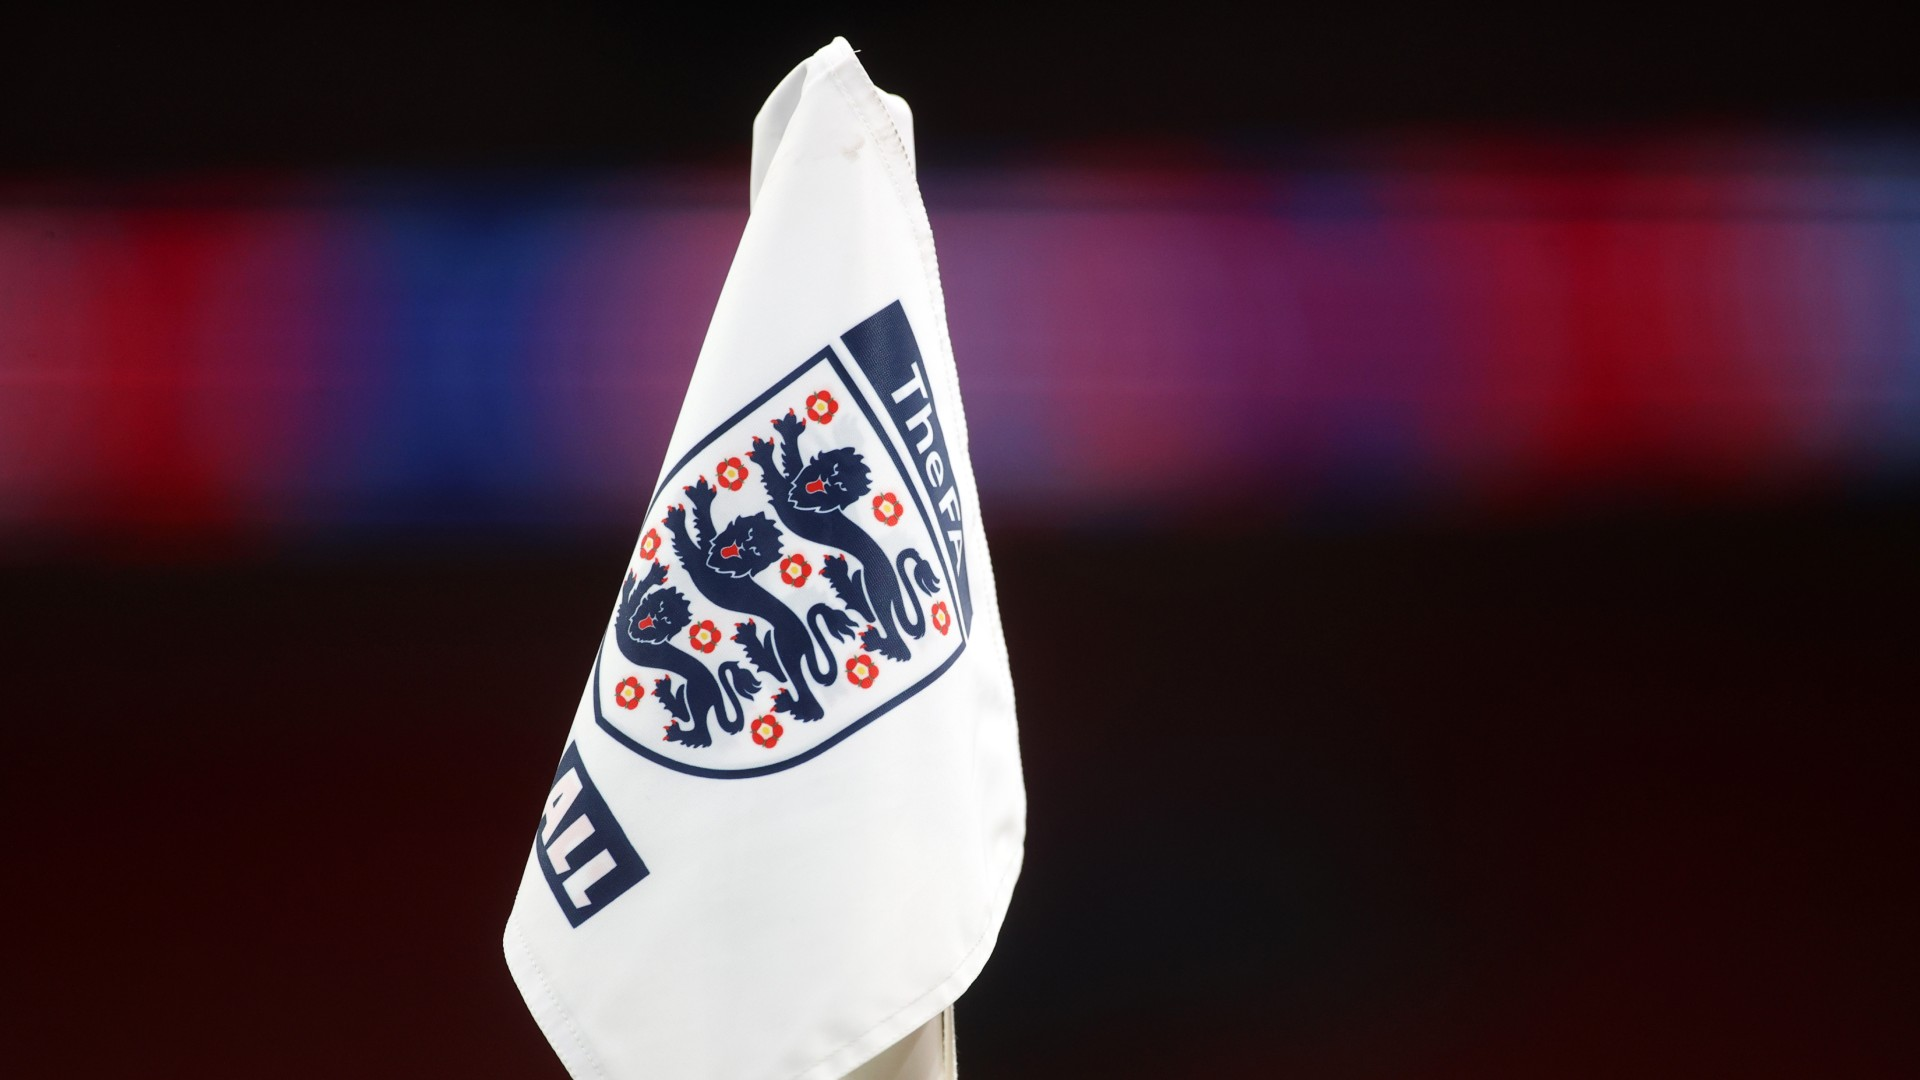 European Super League: UK government backs football authorities over breakaway competition